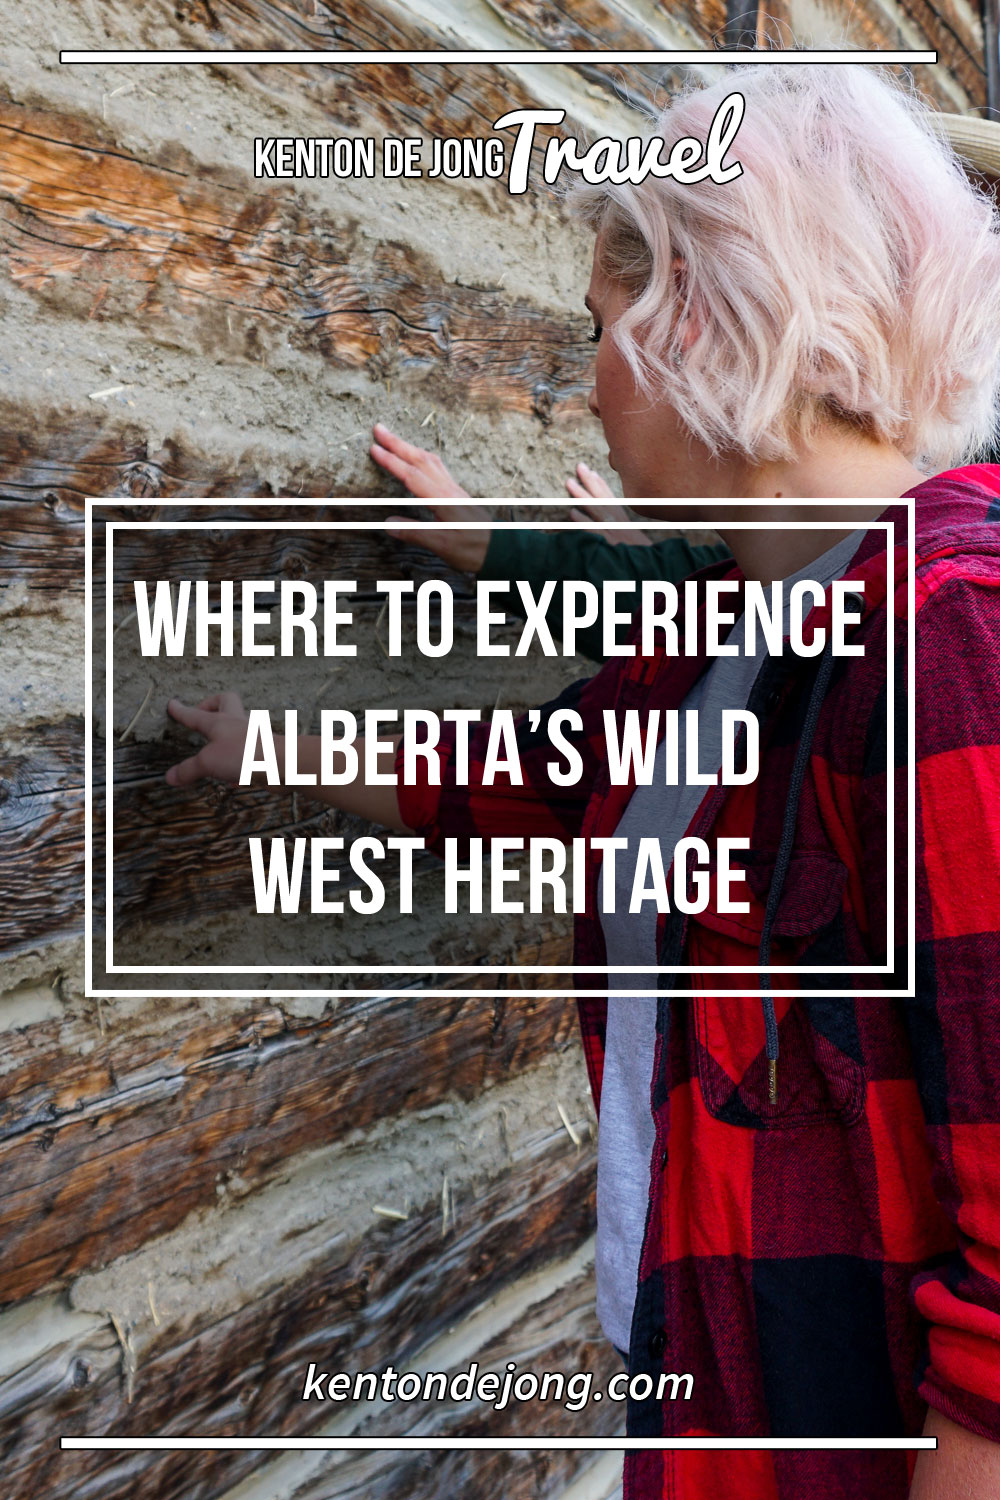 Where to Experience Albert's Wild West Heritage